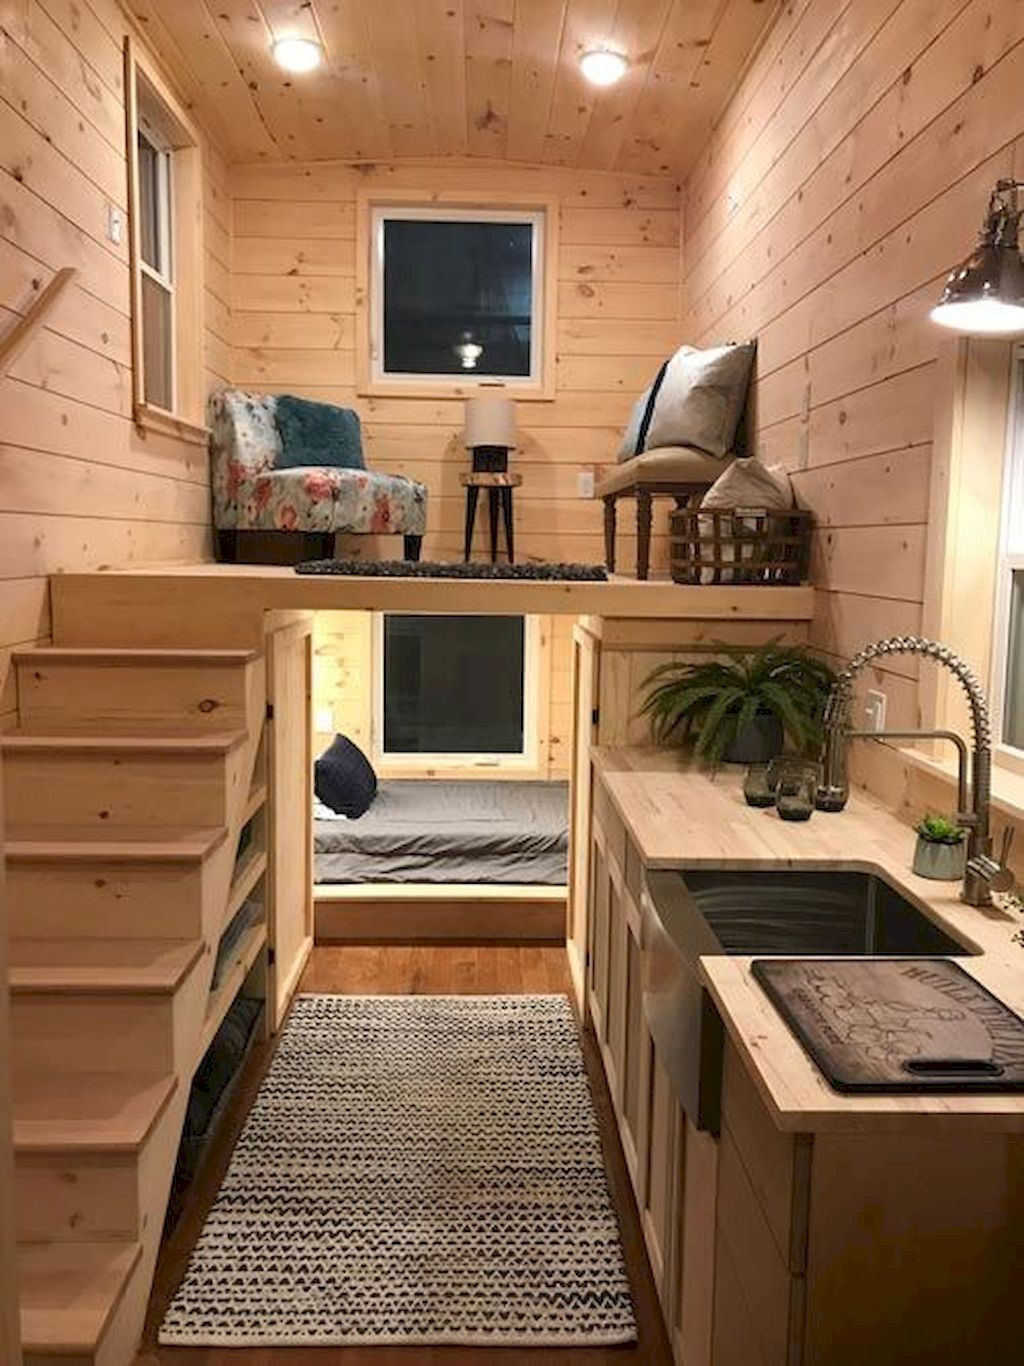 20 Relaxing Tiny House Makeovers Design Ideas With Farmhouse Style Tiny House Interior Design Tiny House Plans Tiny House Living